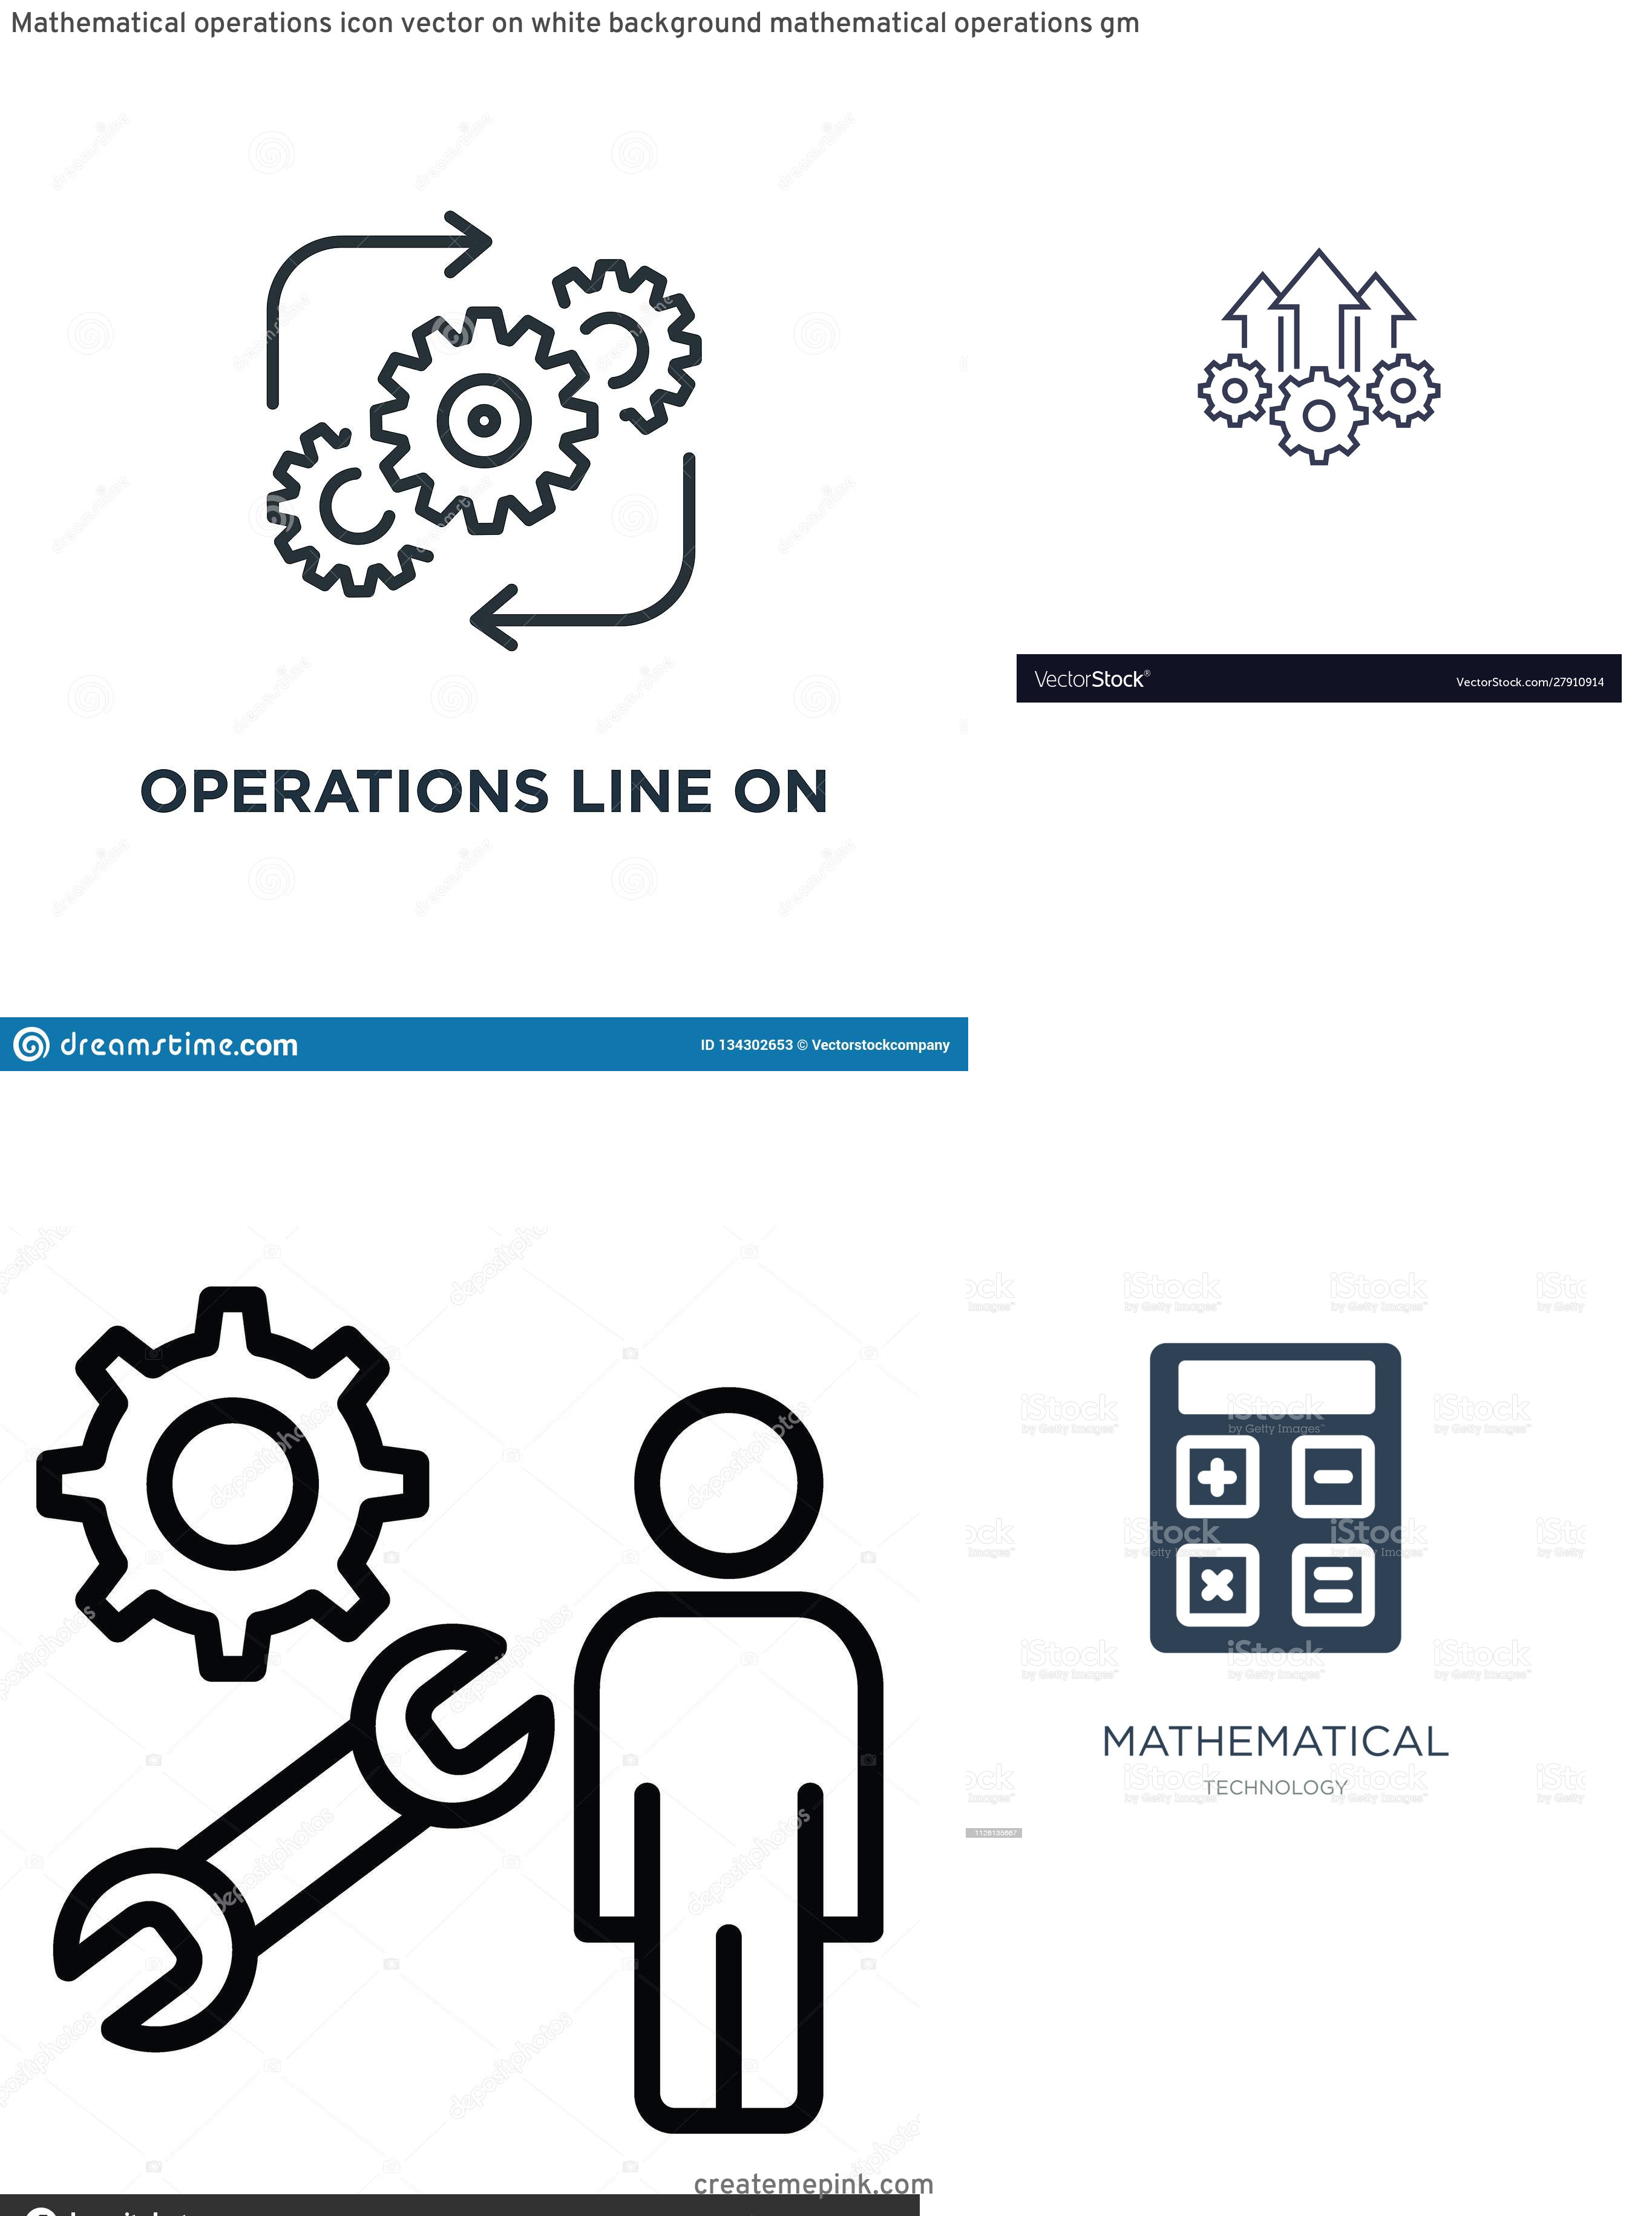 Operations Icon Vector: Mathematical Operations Icon Vector On White Background Mathematical Operations Gm